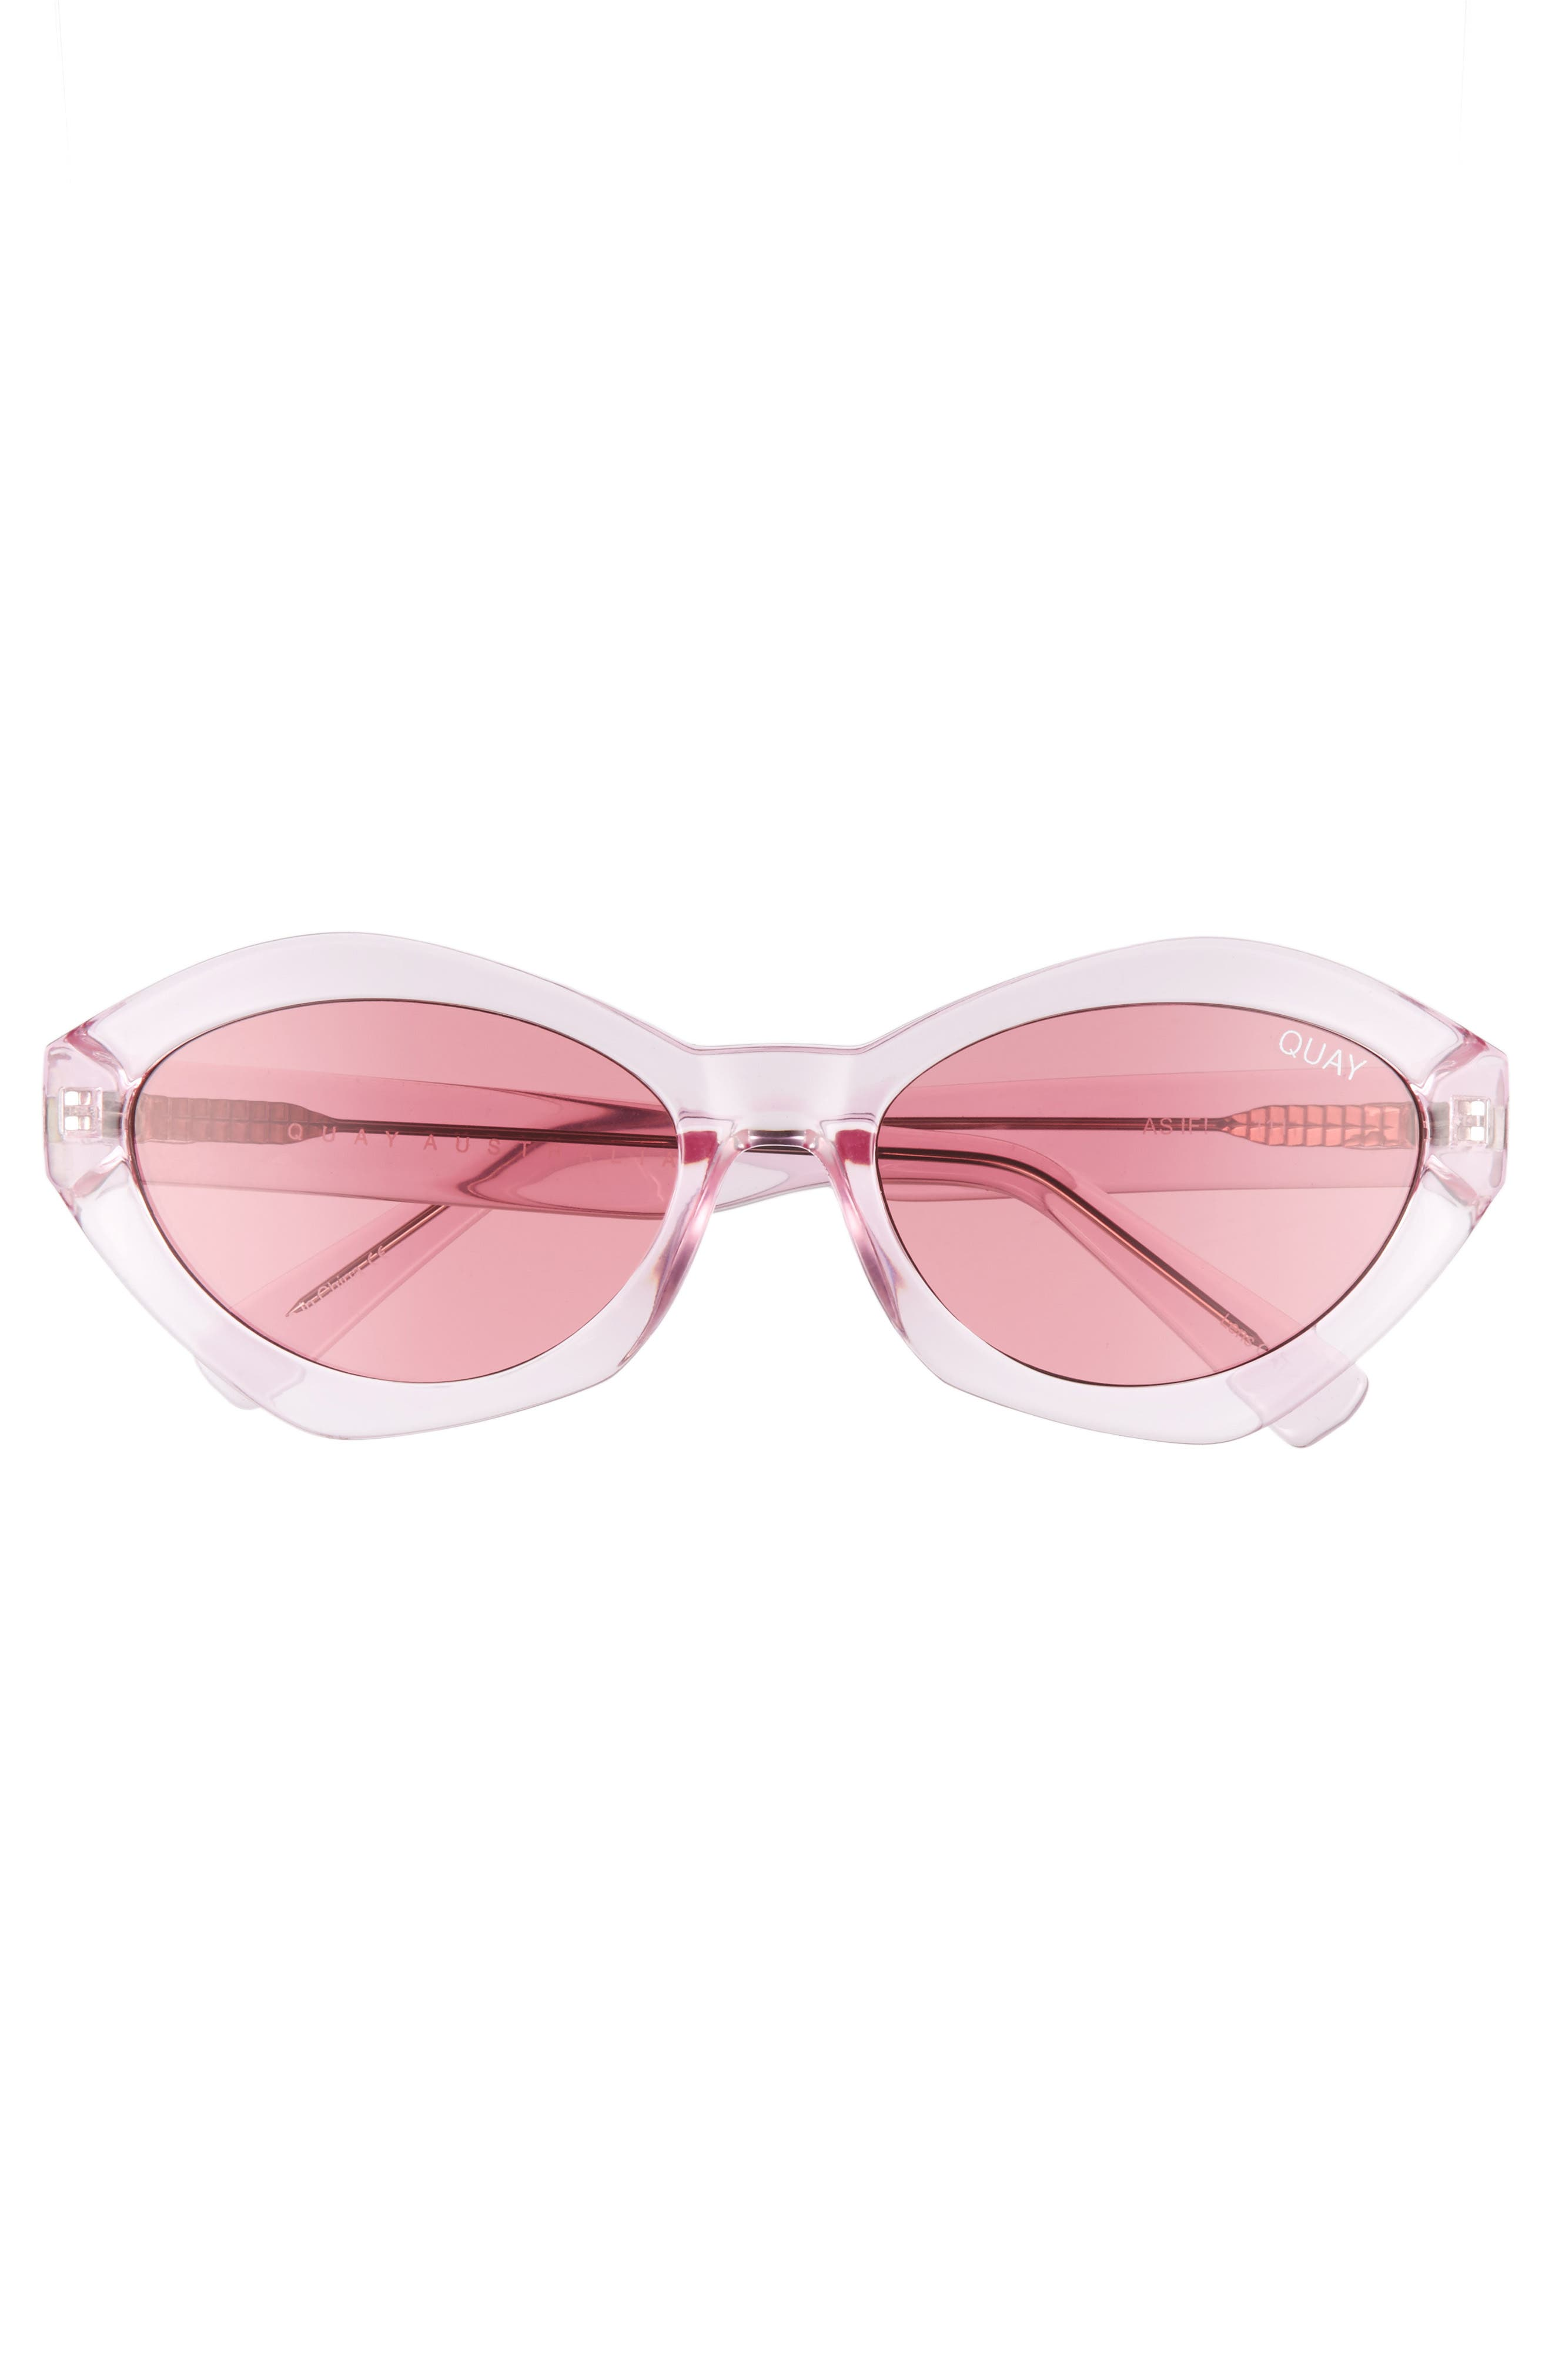 54mm As If Oval Sunglasses,                             Alternate thumbnail 3, color,                             PINK/ PINK